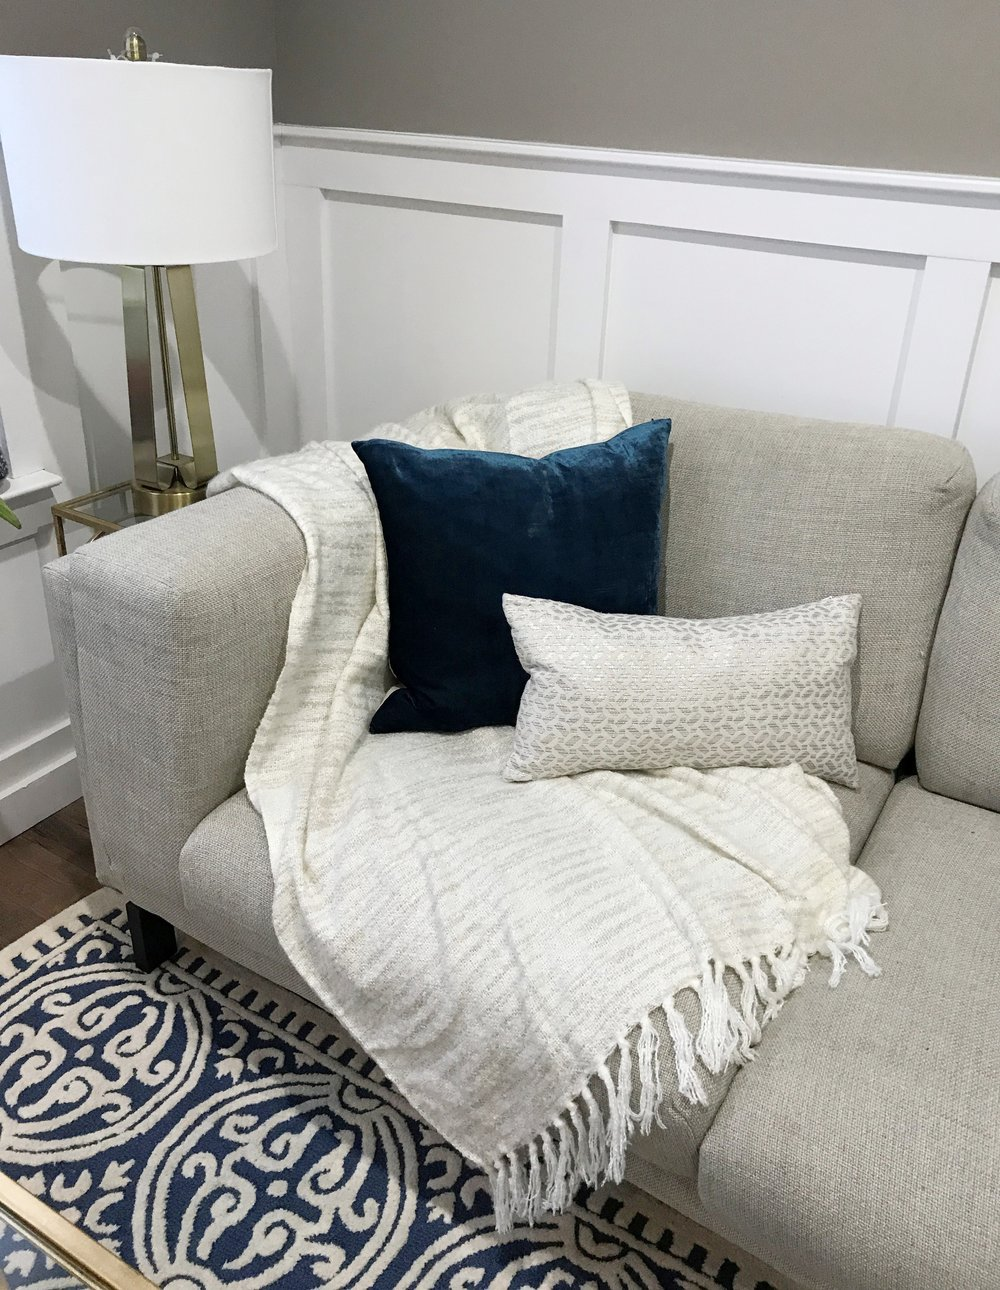 how-to-style-throw-blanket-westelm